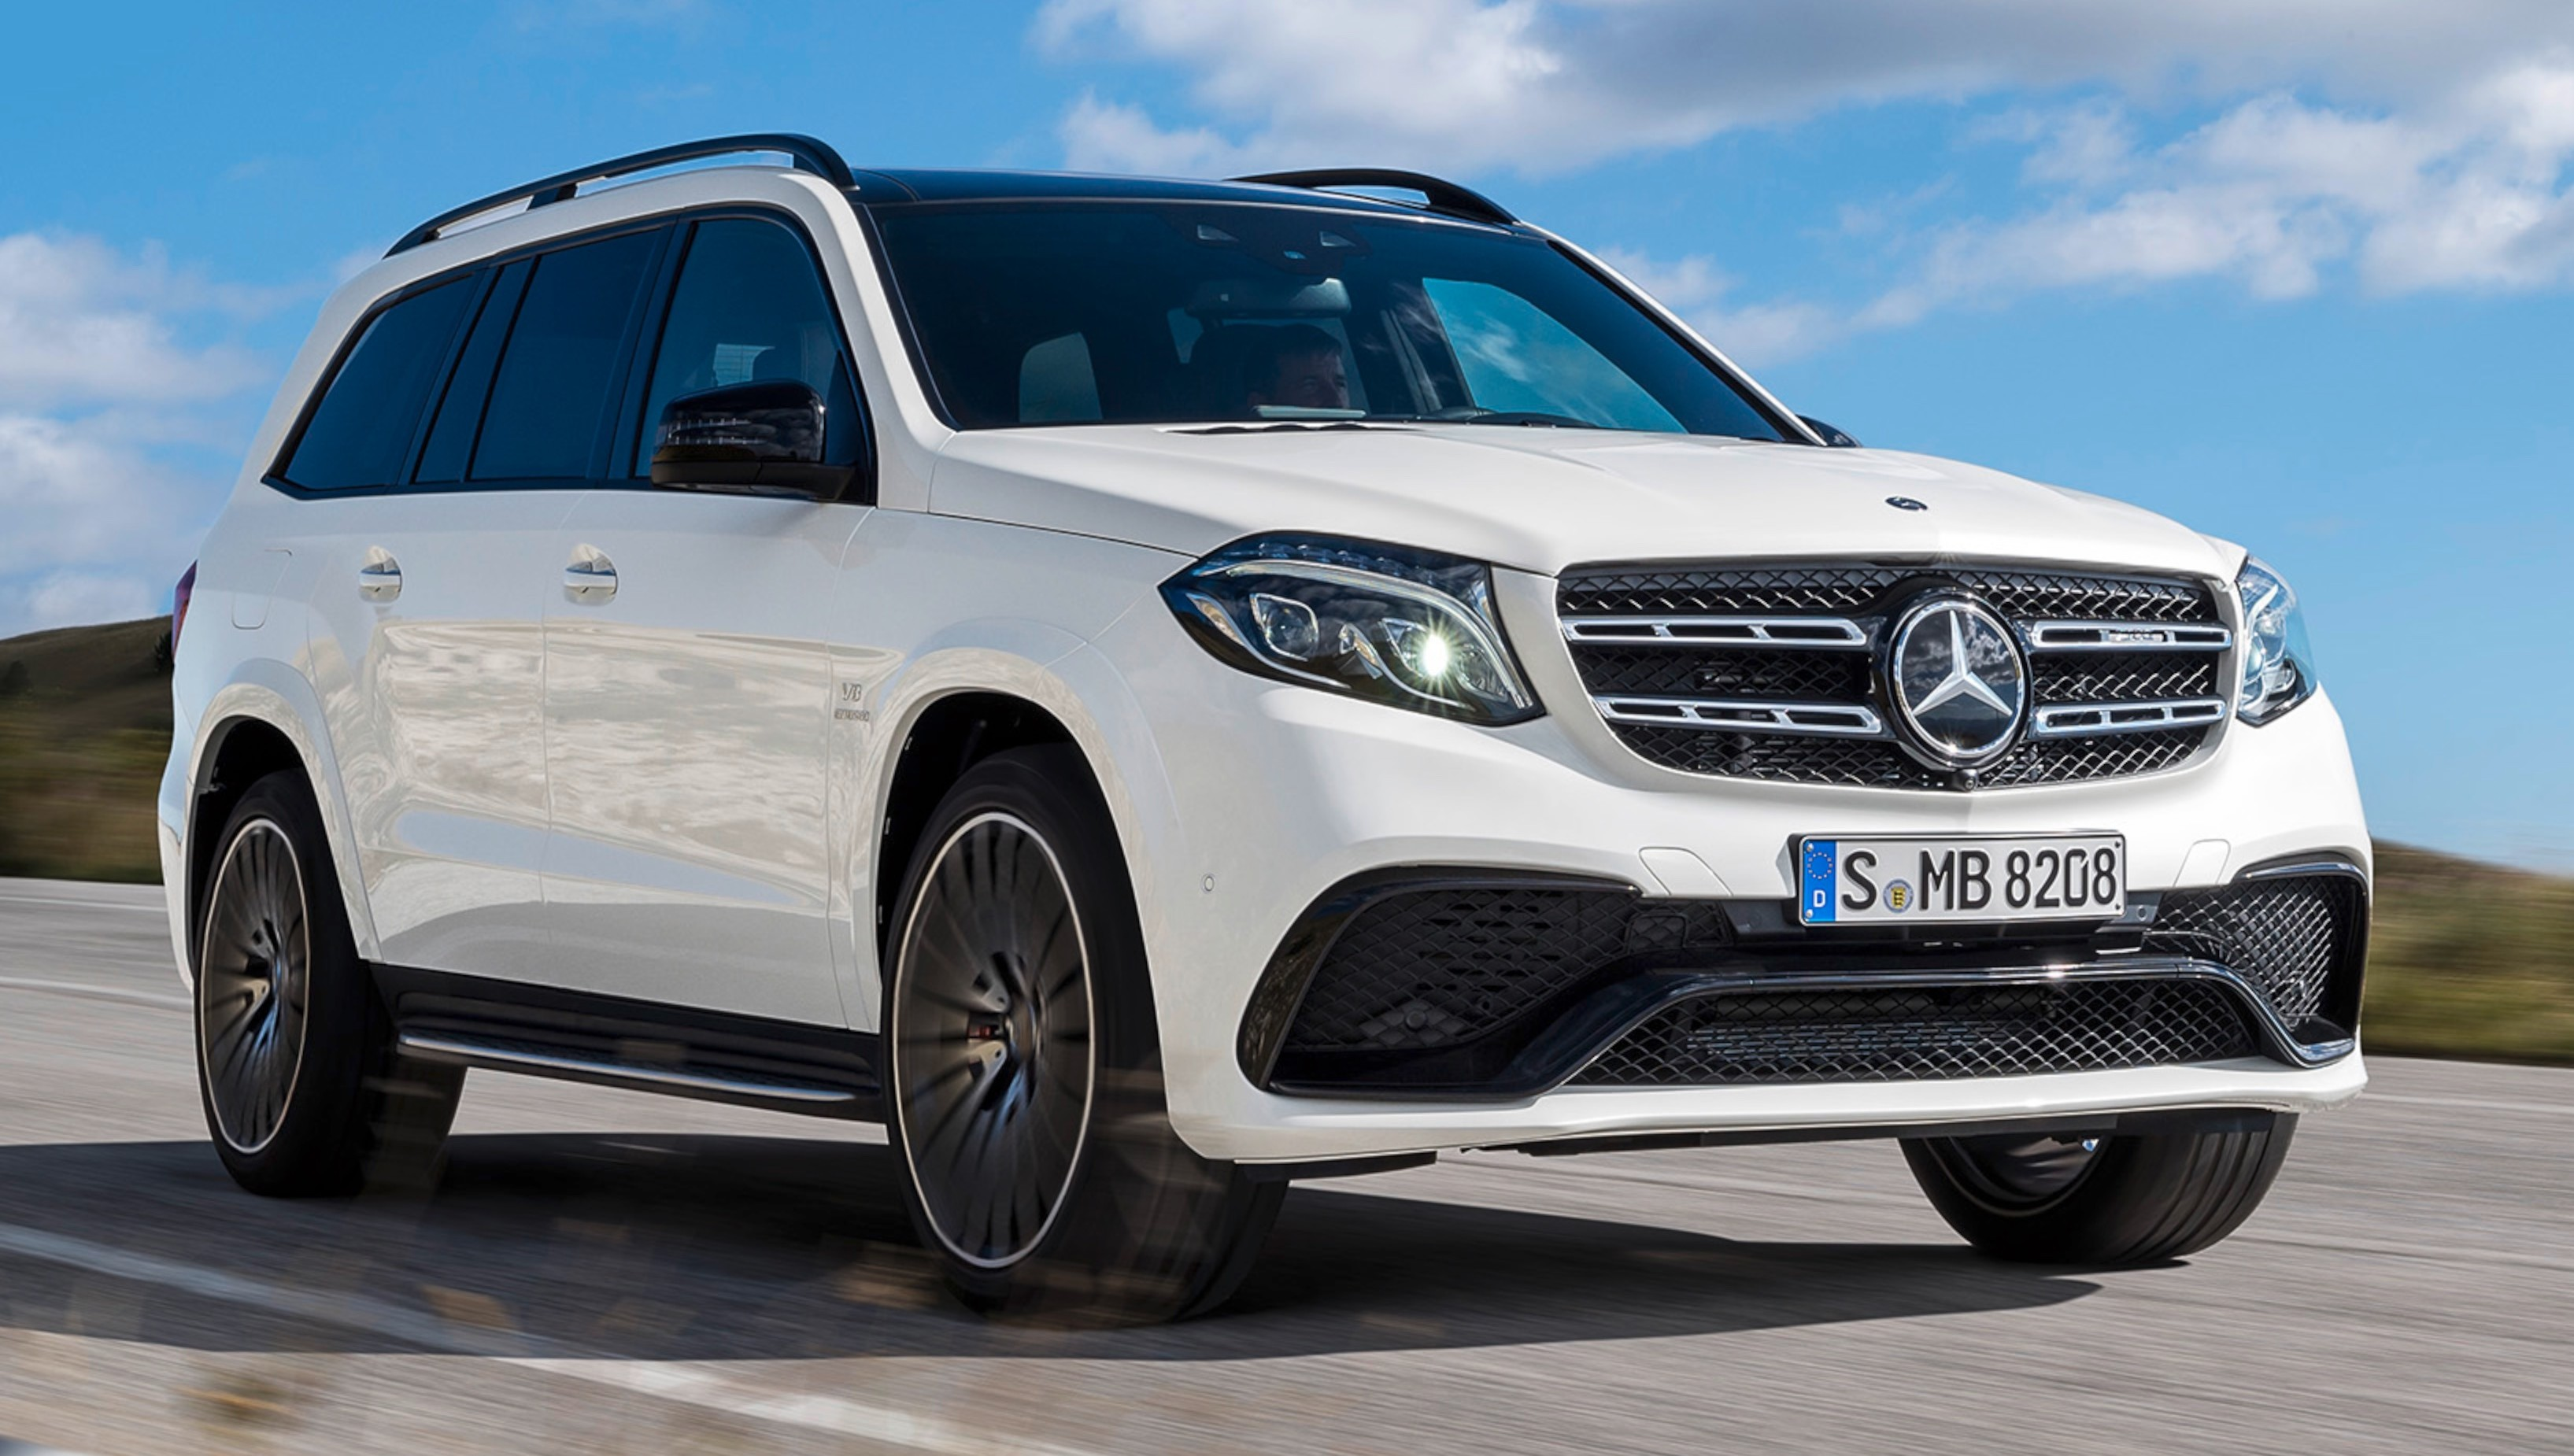 Mercedes benz gls debuts the s class among suvs for Gls mercedes benz suv